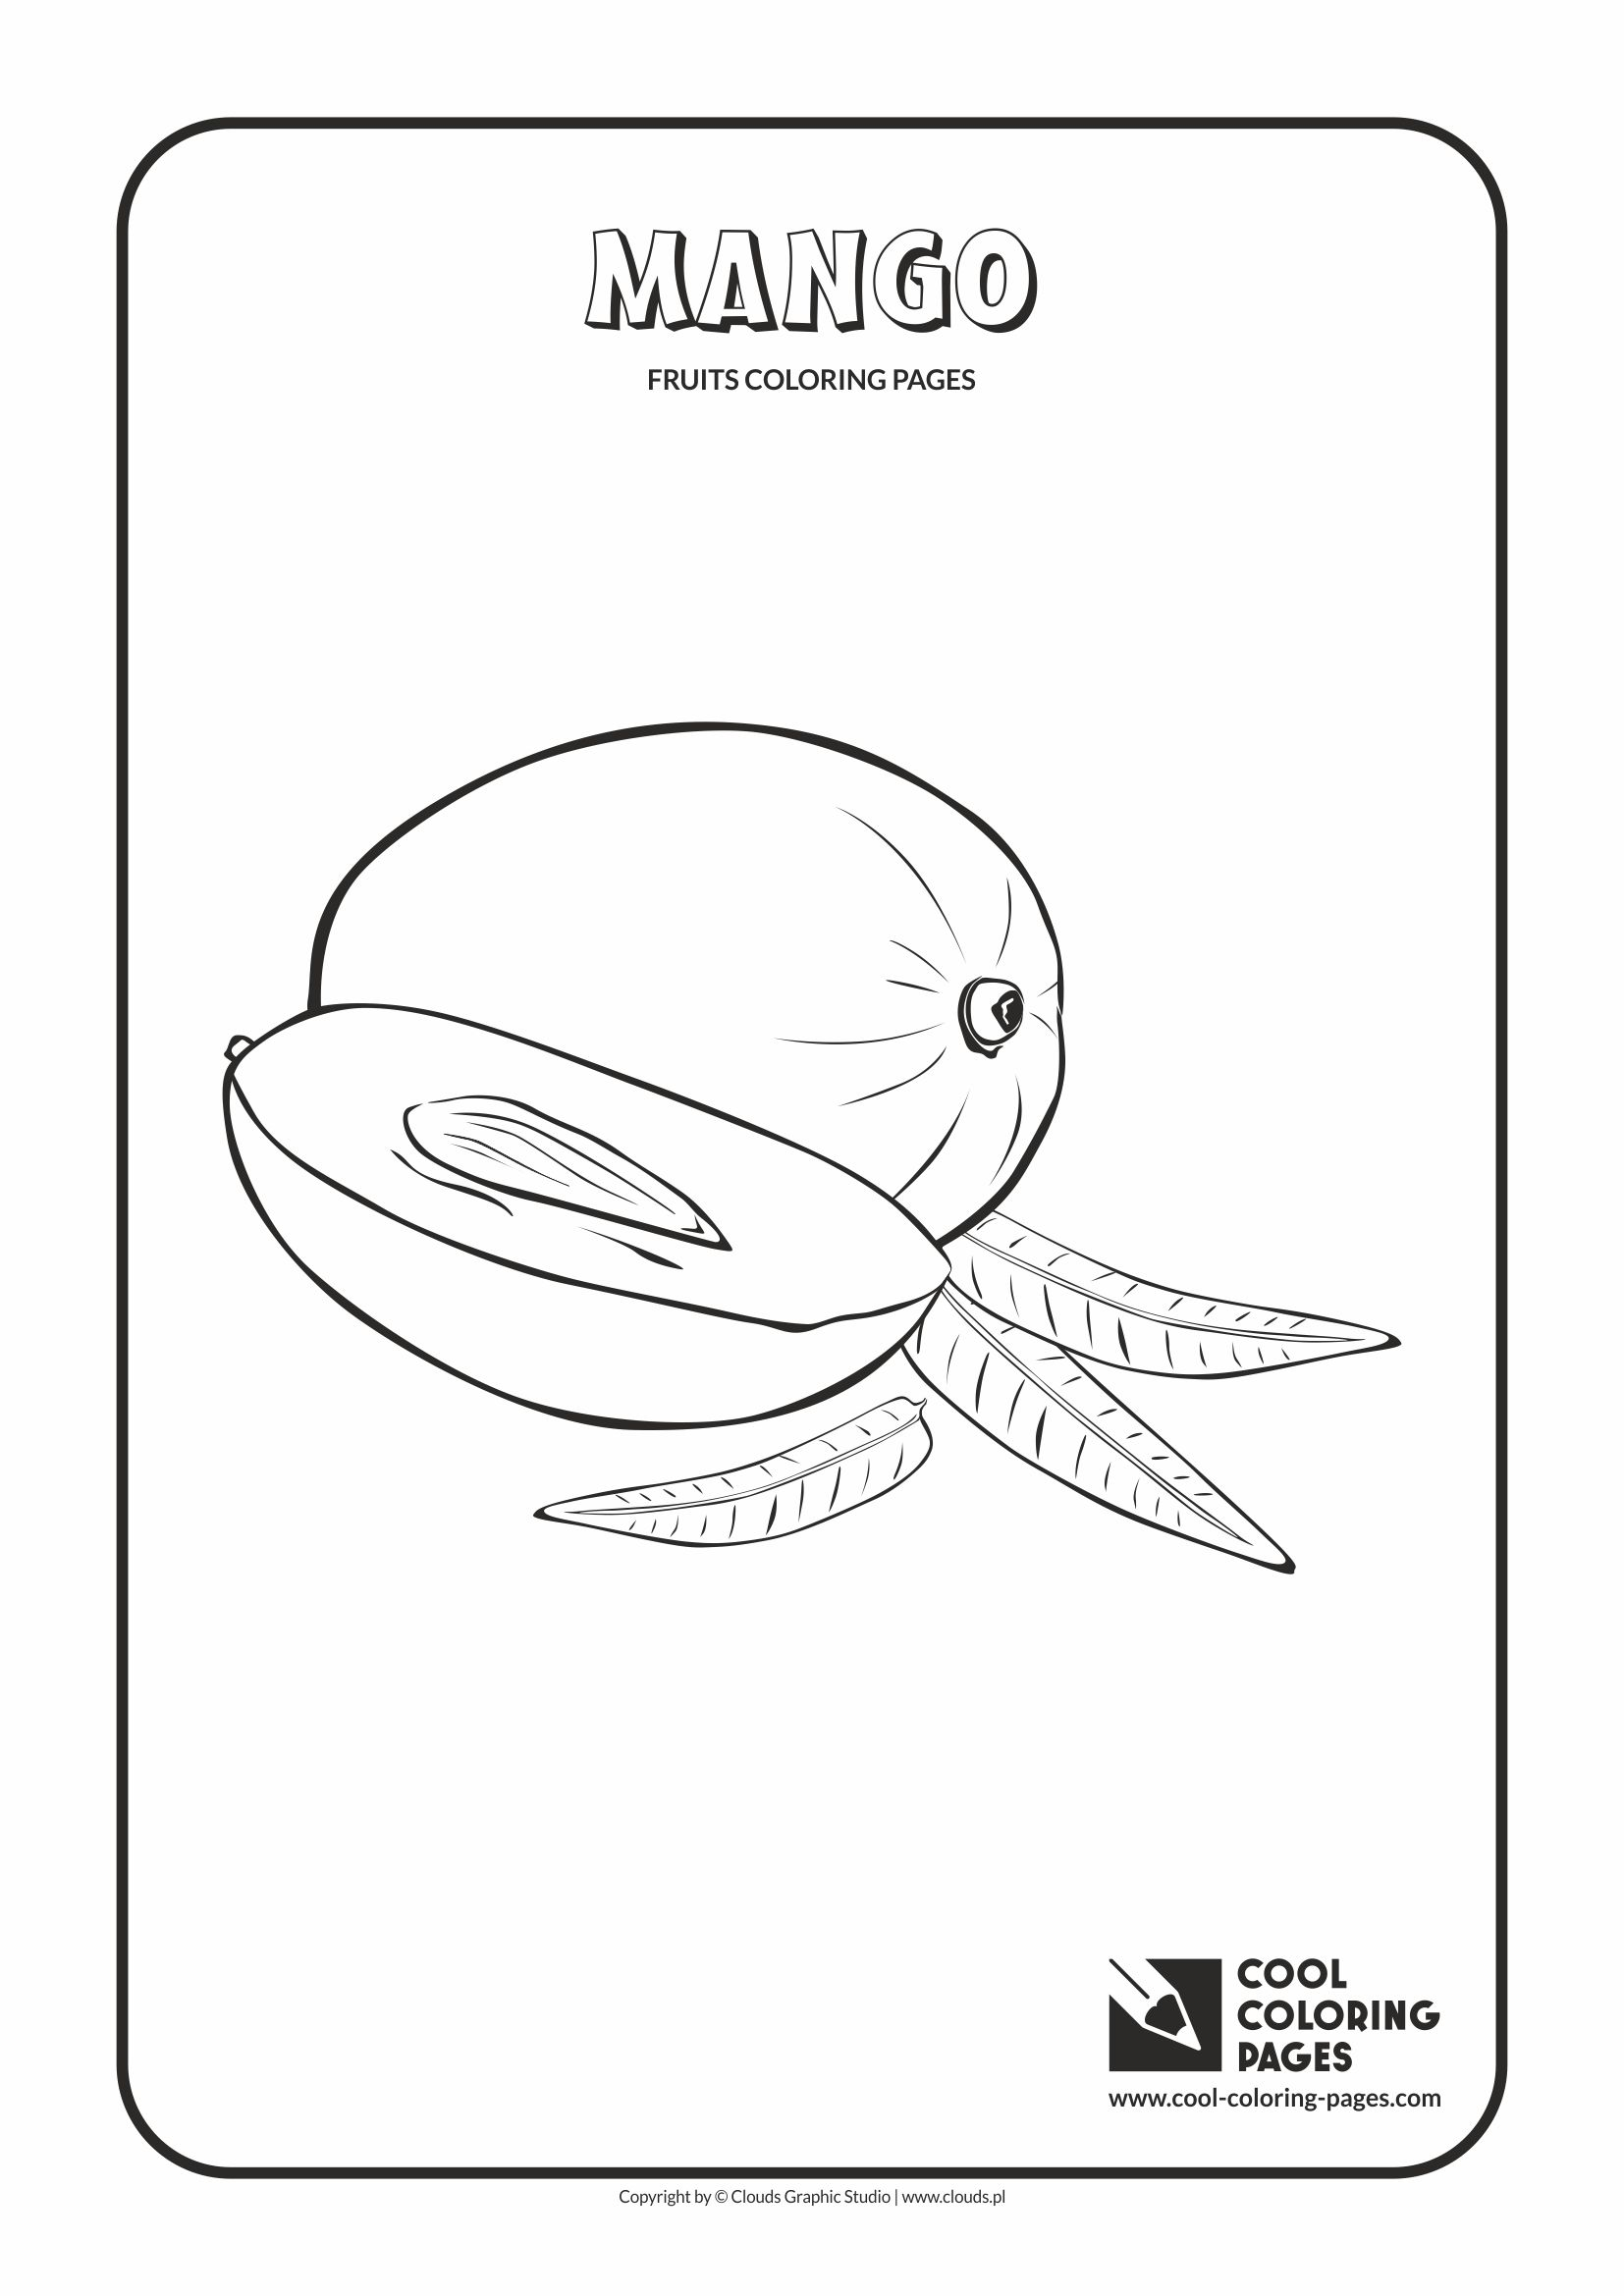 Cool Coloring Pages Fruits coloring pages Cool Coloring